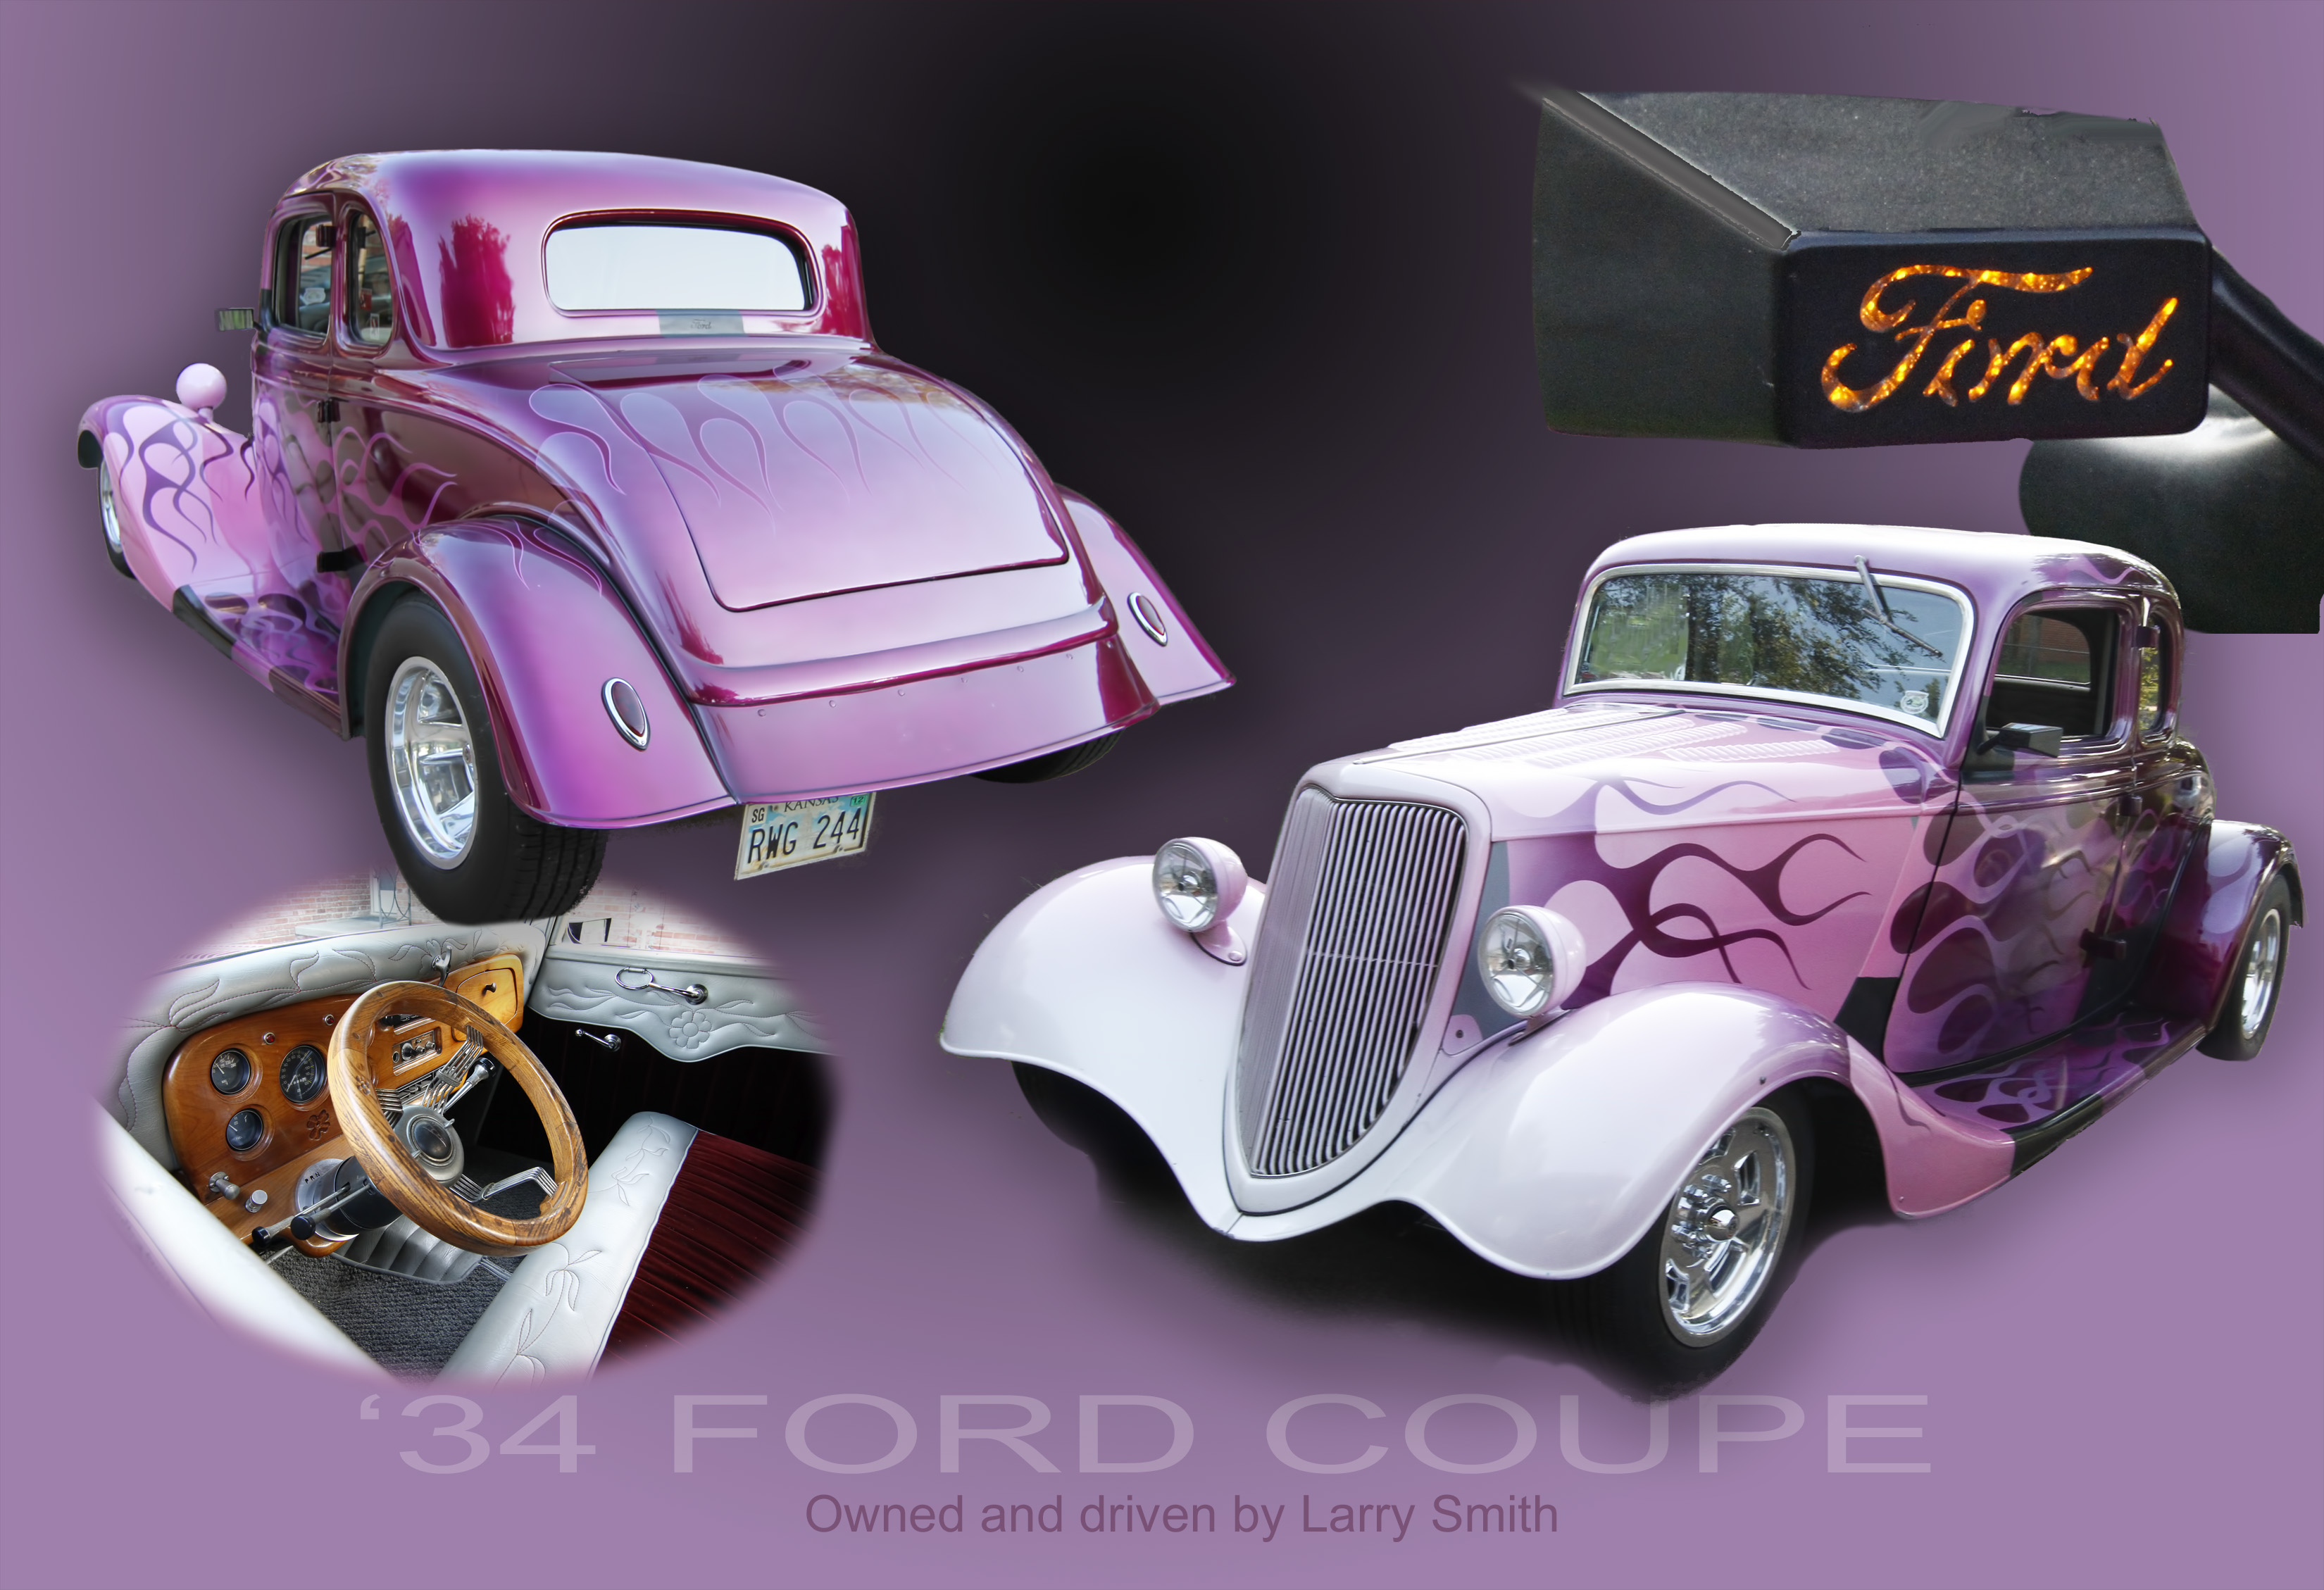 FORD_COUPE_MONTAGE